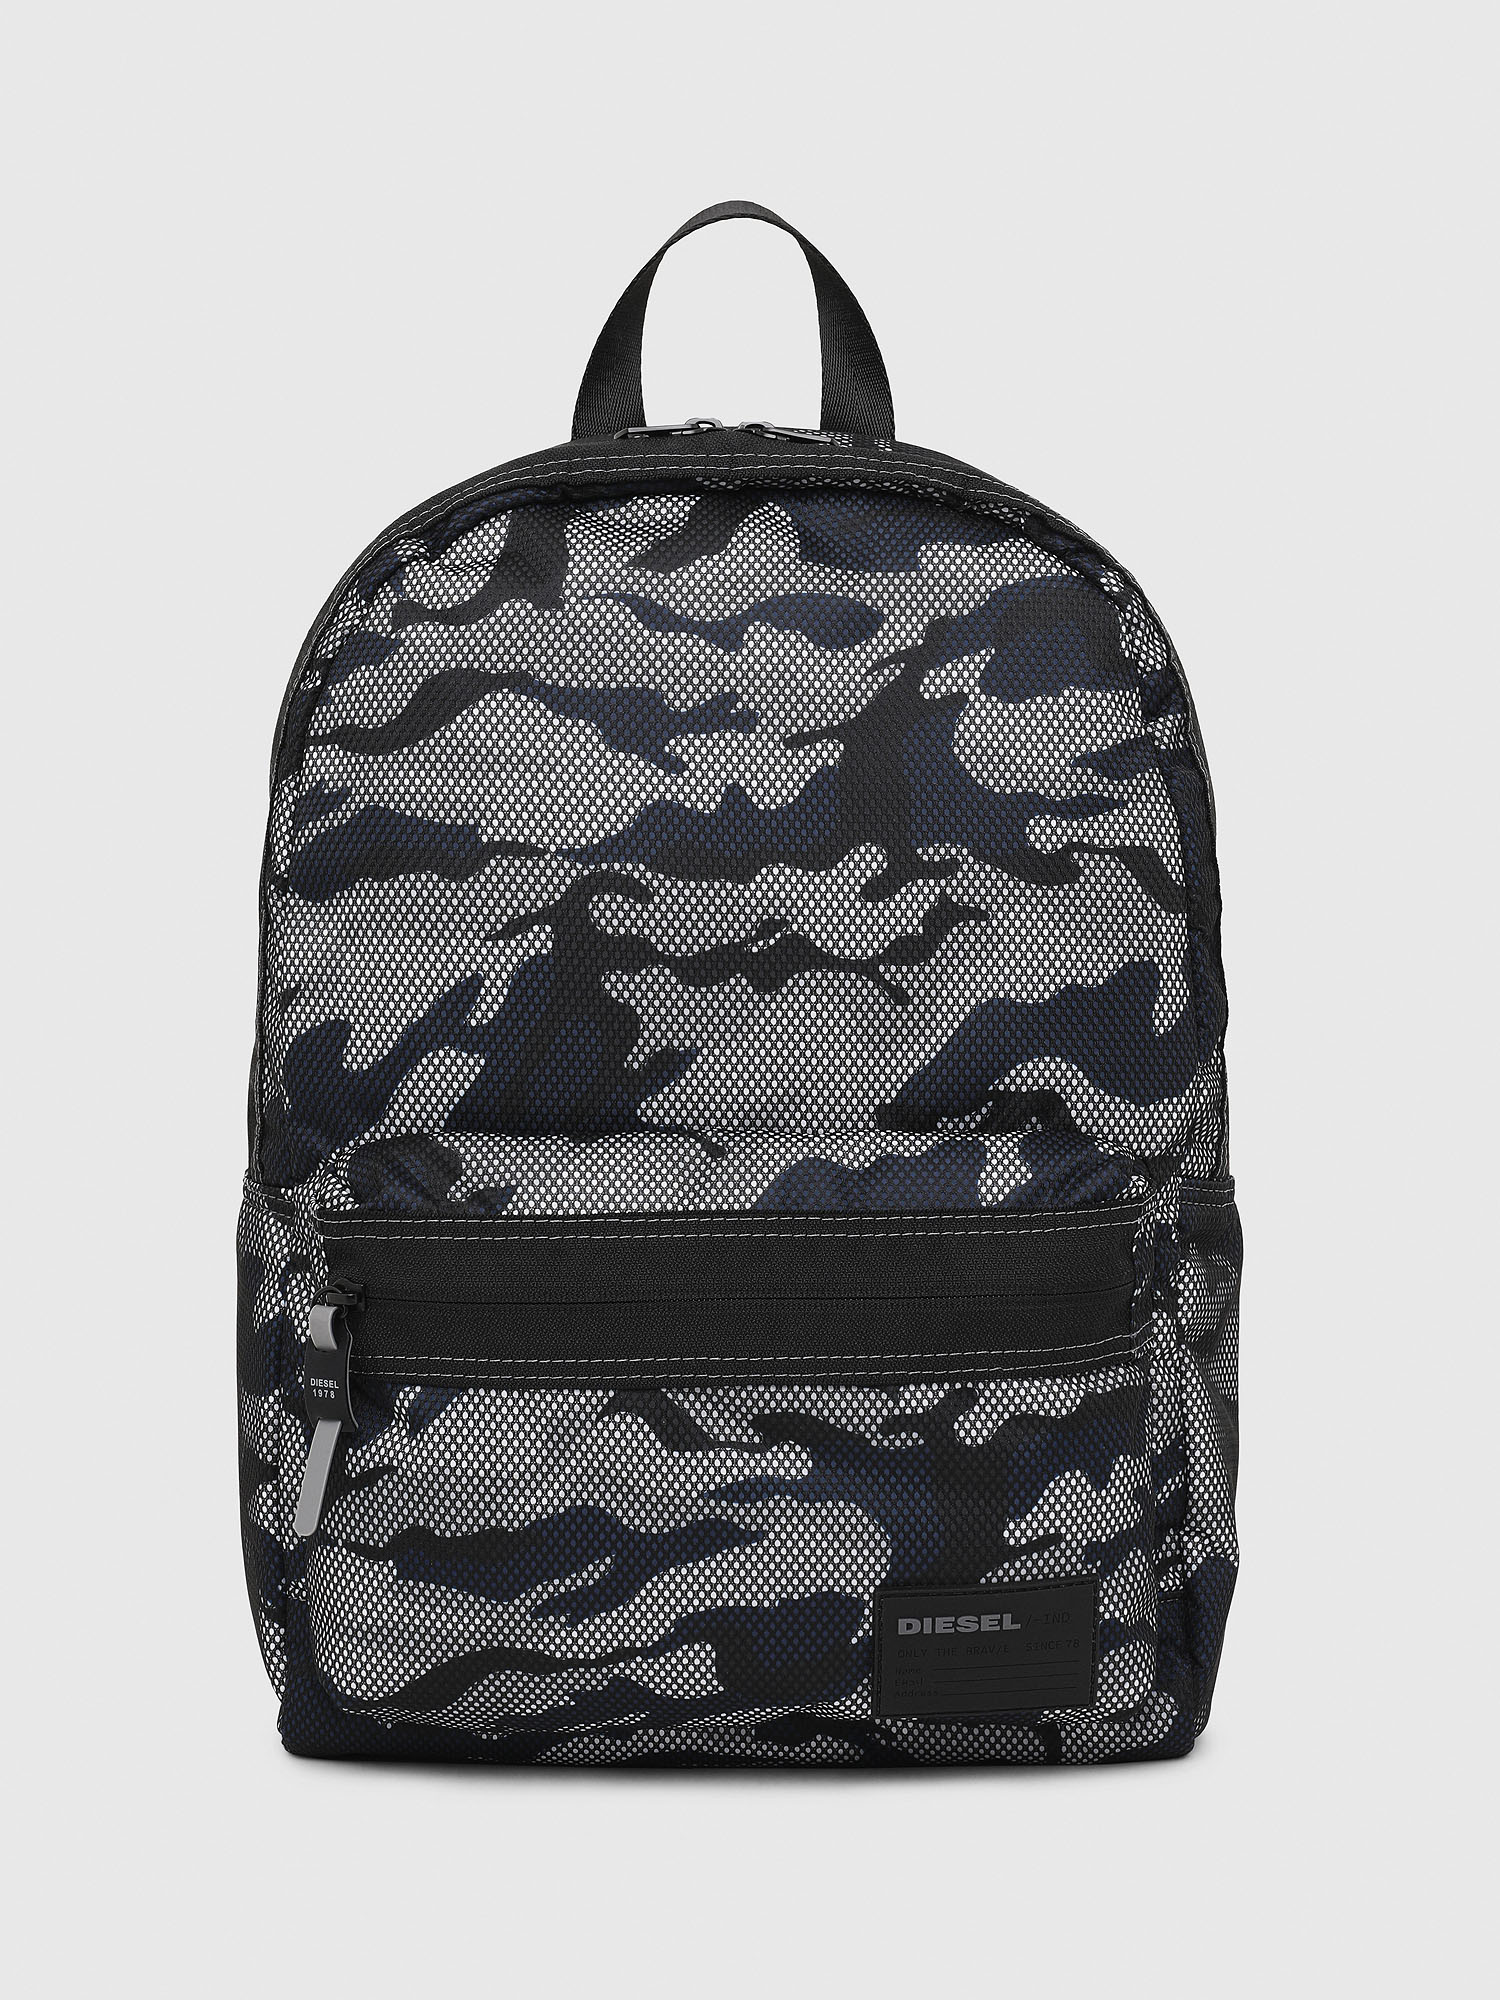 Diesel Backpacks P3042 - Grey